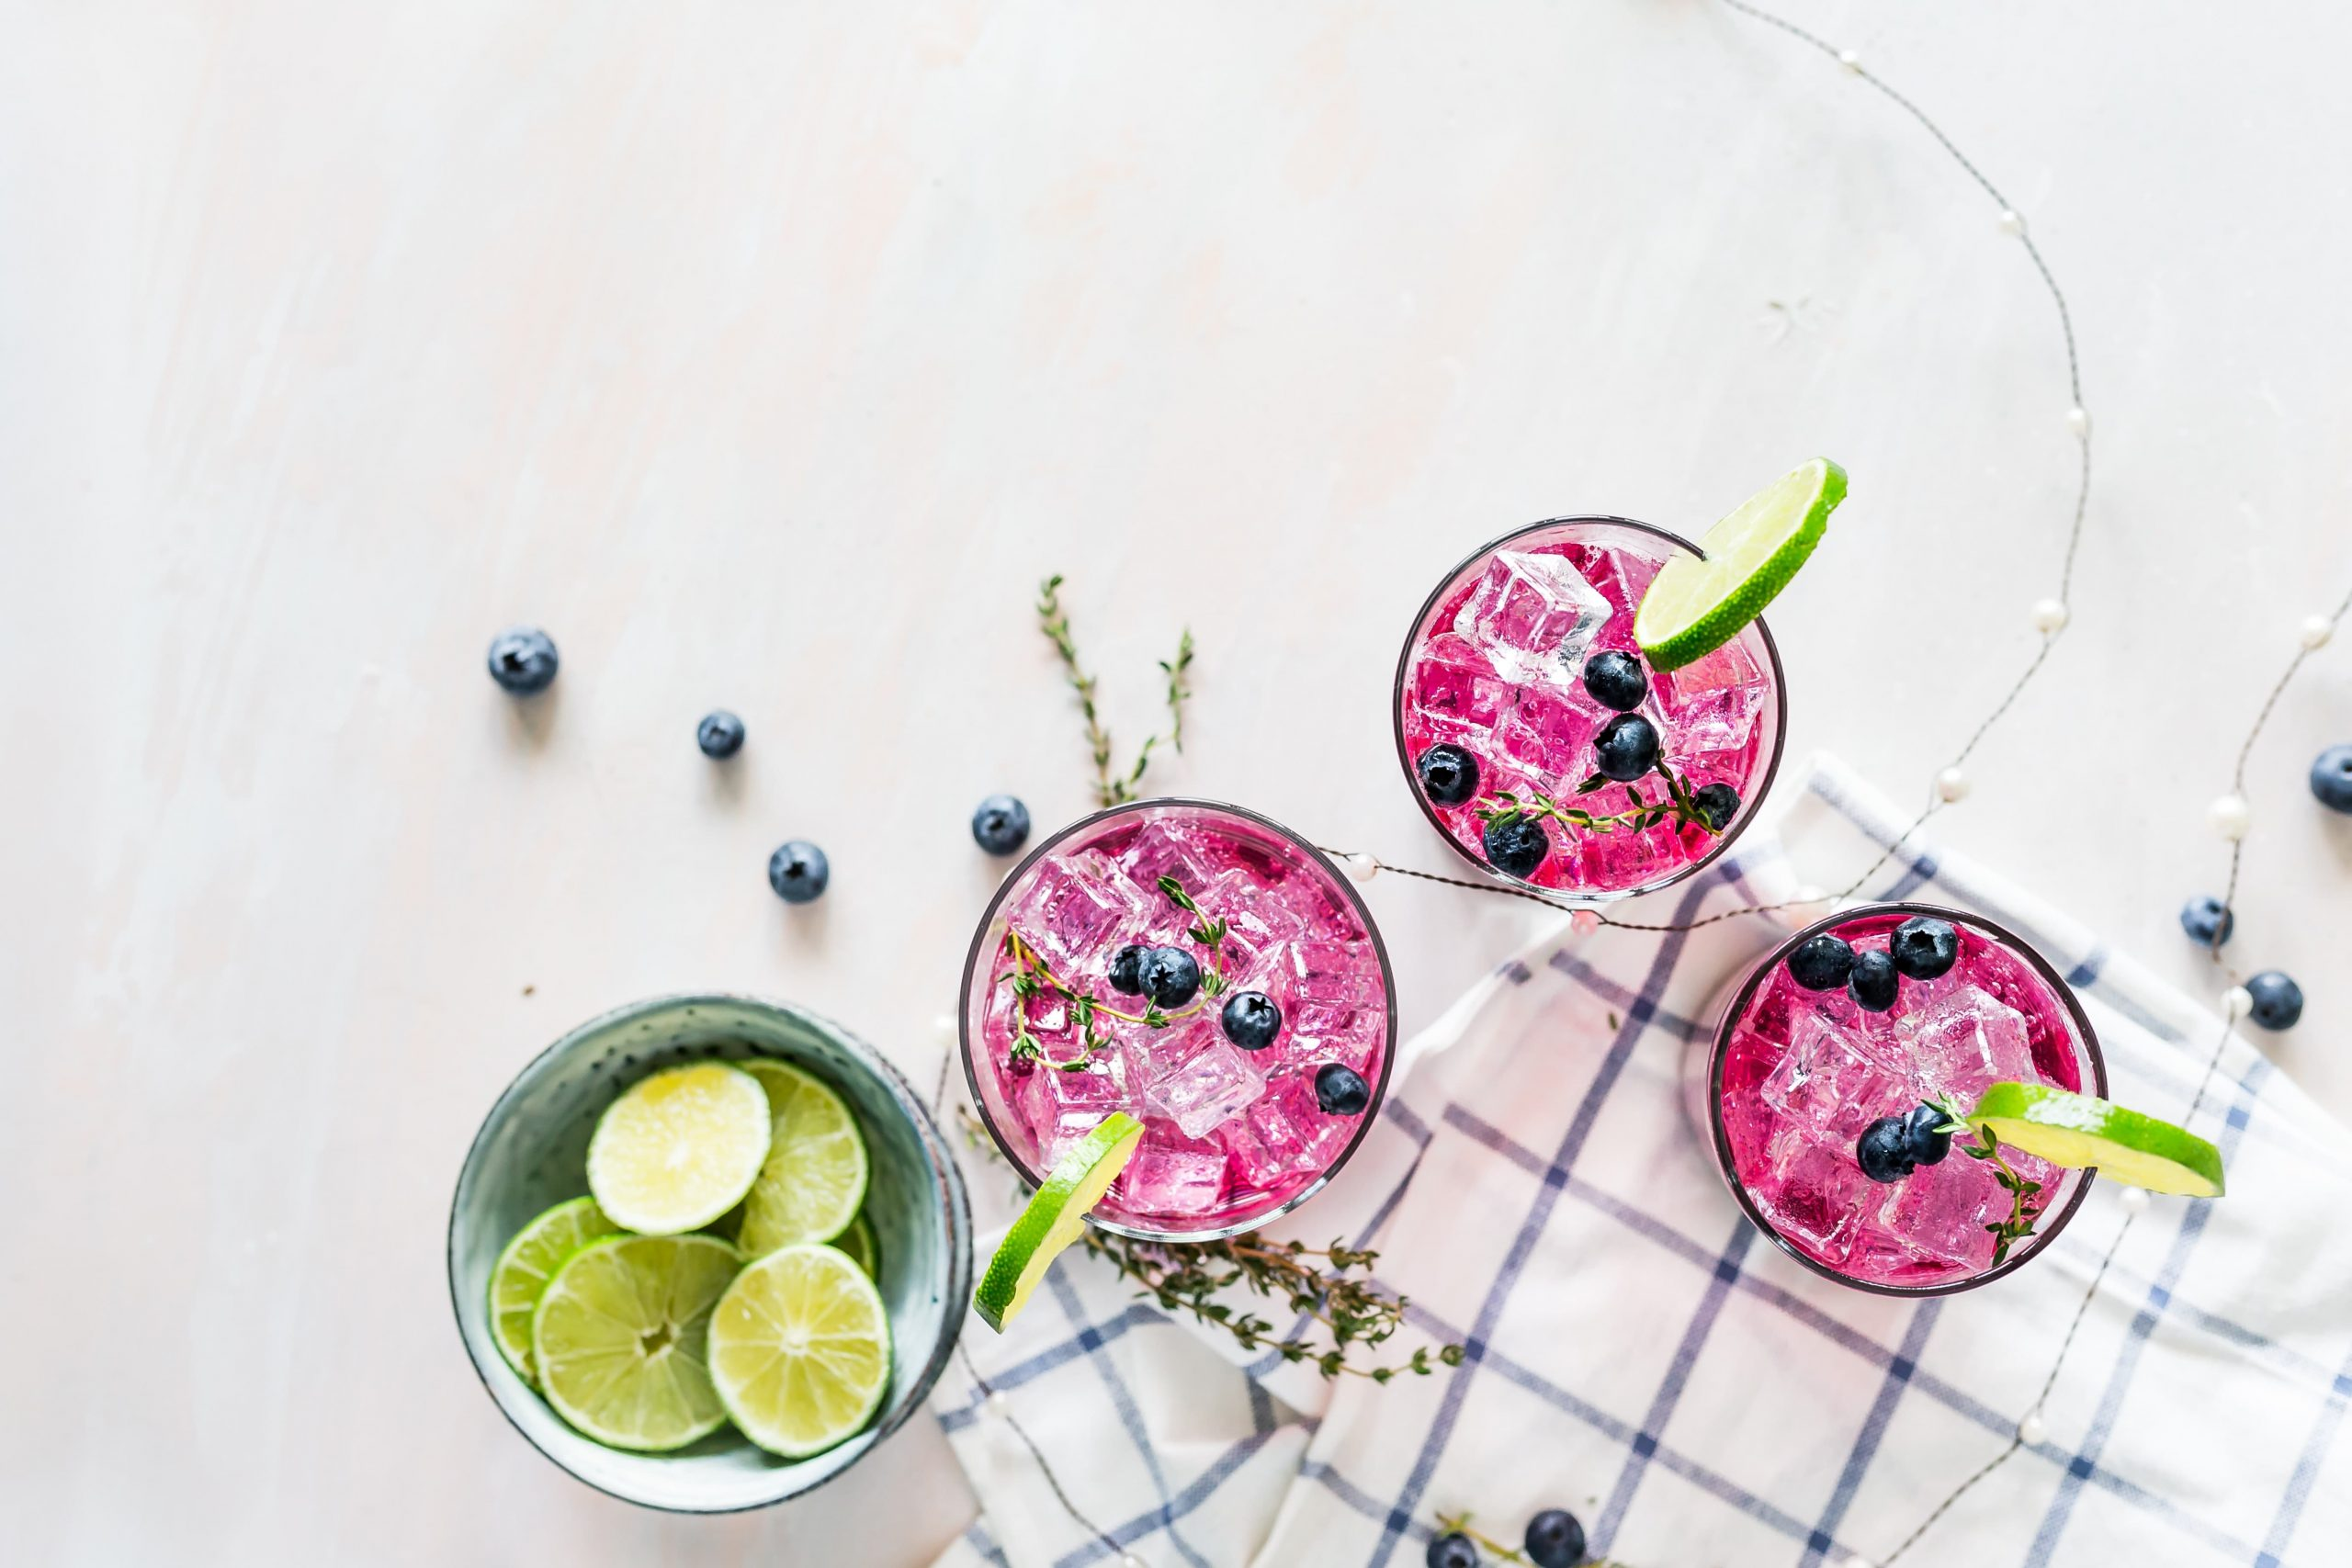 Three colorful drinks on a white background.